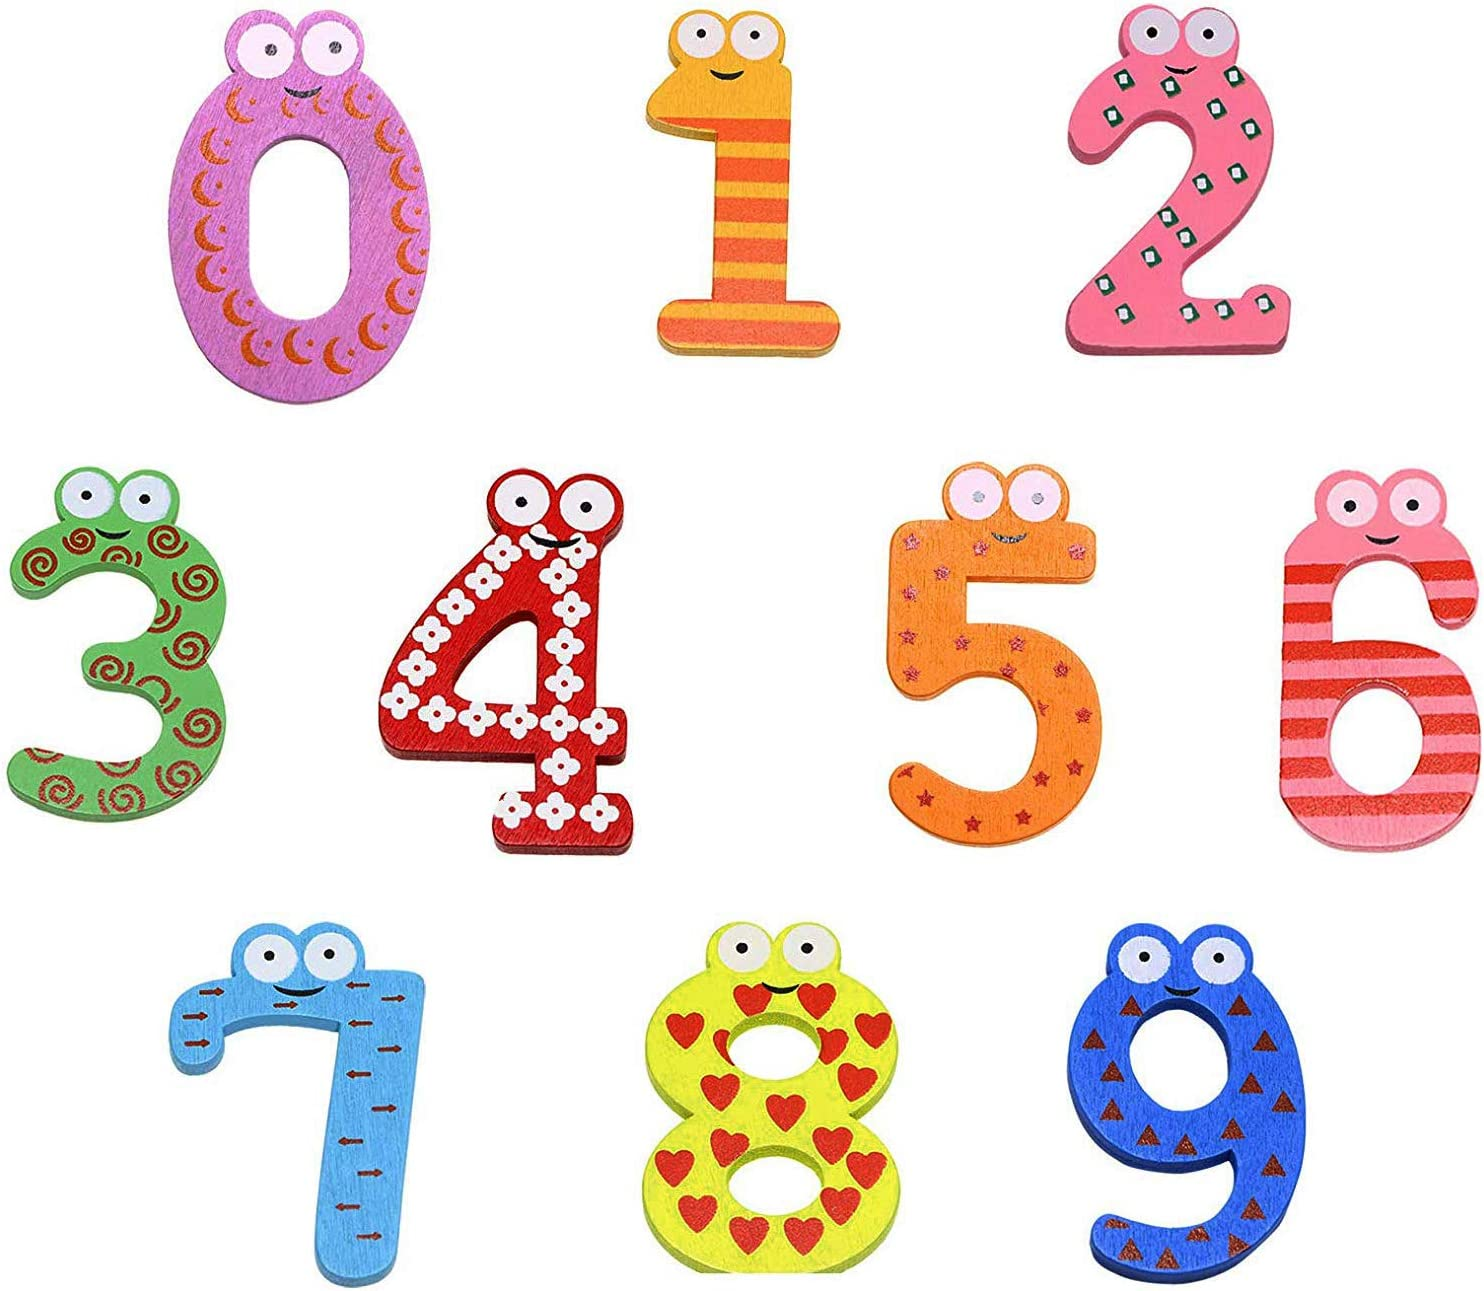 PENTA ANGEL 10Pcs Wooden Magnets Fridge Numbers Large Cute Wood Magnetic Refrigerator Learning Game Toys for Kids Baby Girls Boys Toddler Preschool Educational(Number)